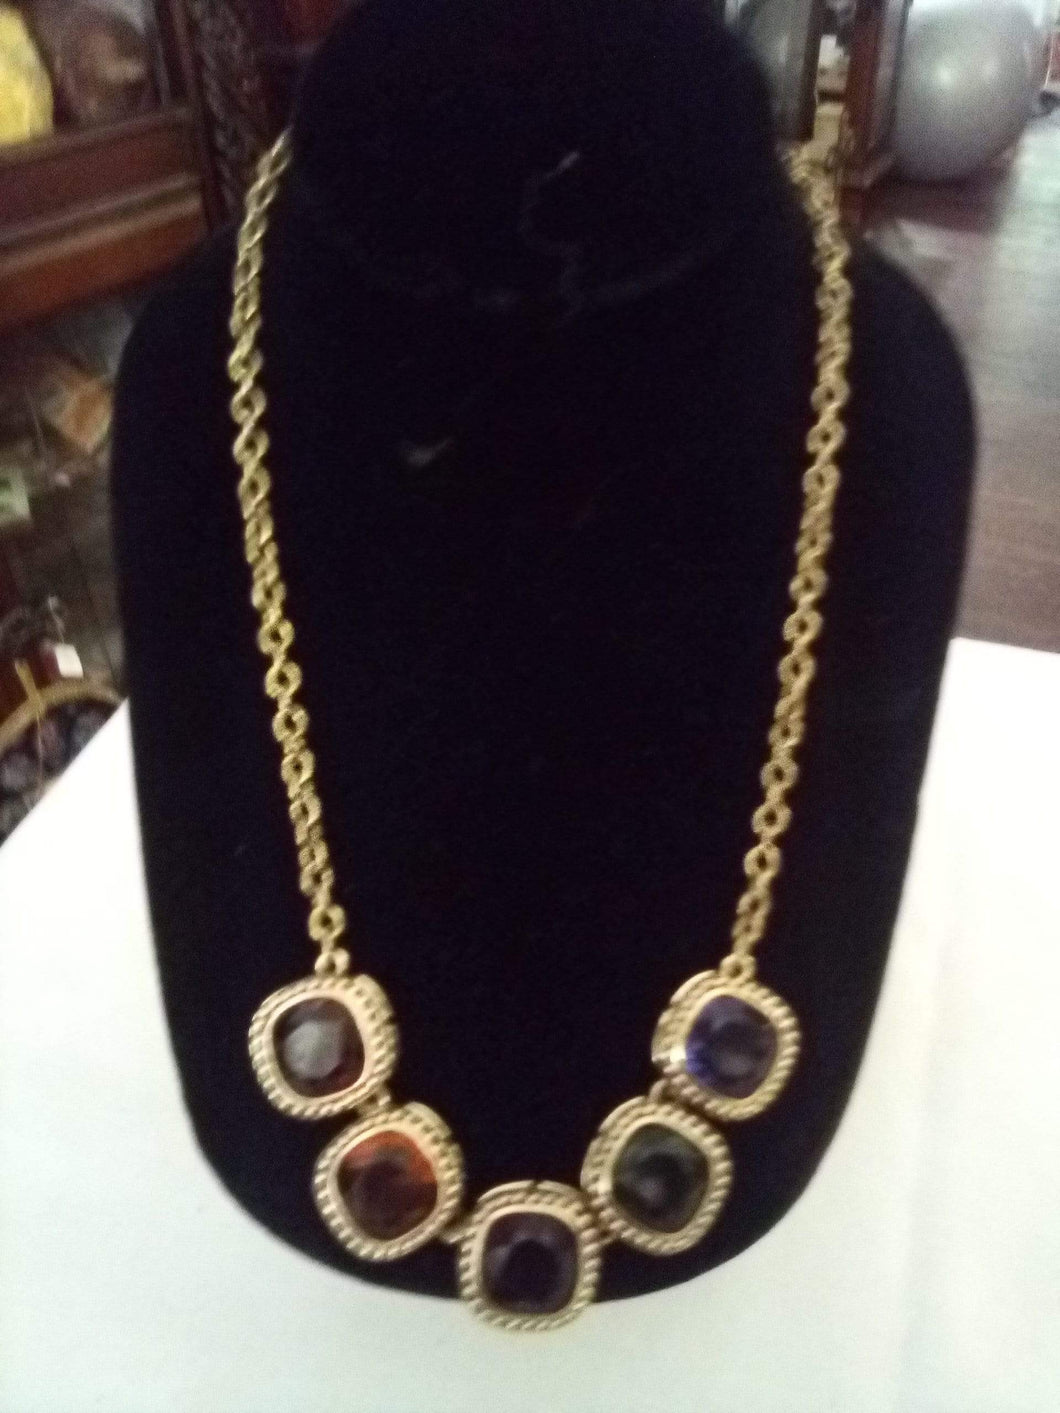 Vintage dressy necklace with colorful attached stones - B&P'sringsnthings